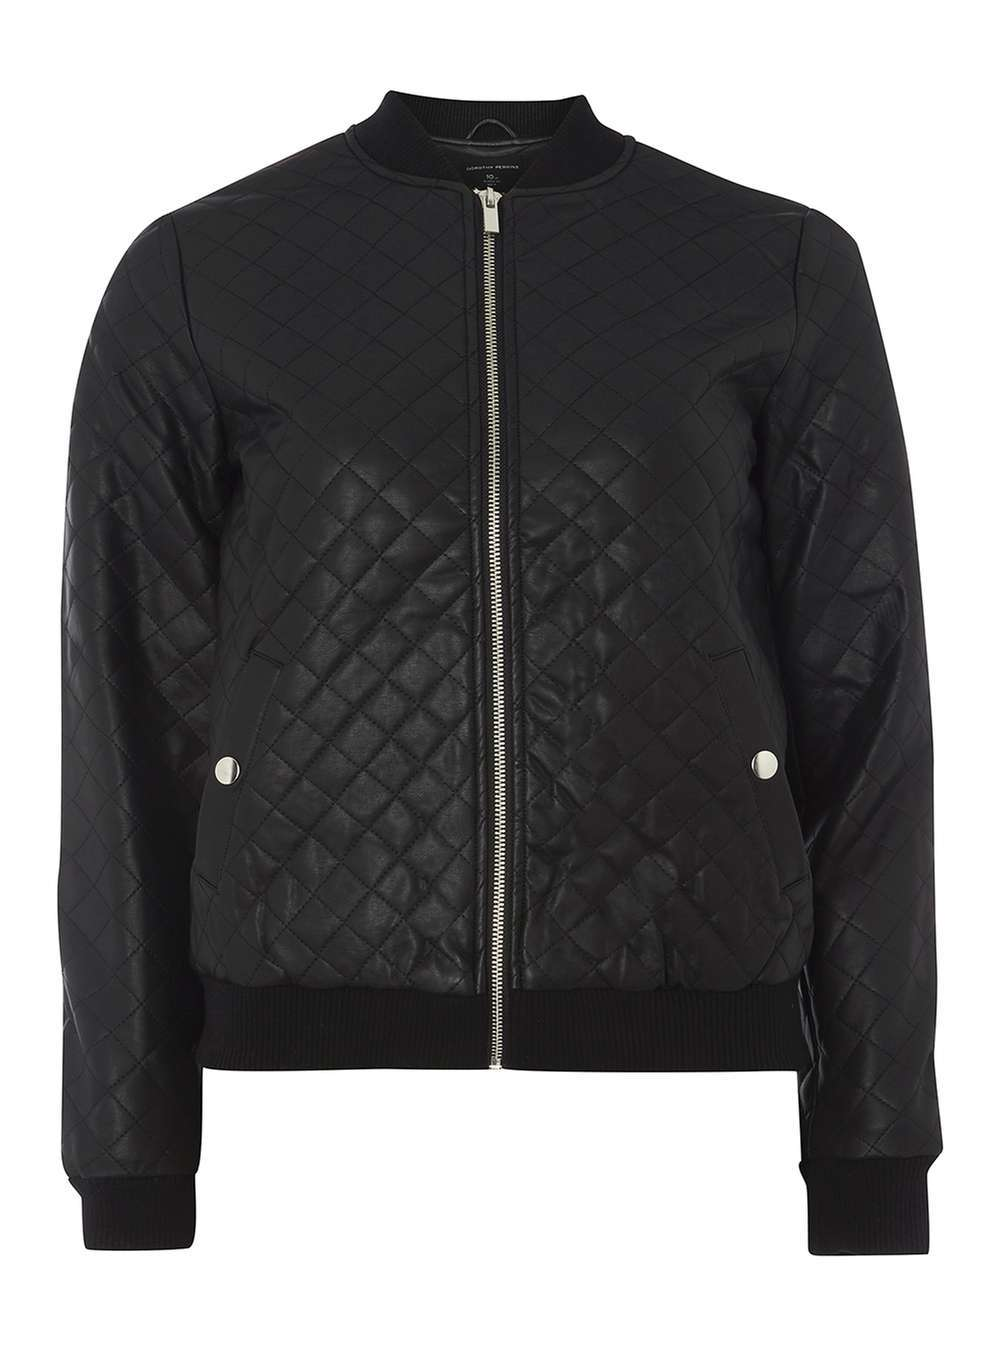 Womens Black Faux Leather Bomber Jacket Black - pattern: plain; collar: round collar/collarless; fit: slim fit; style: bomber; predominant colour: black; occasions: casual; length: standard; fibres: polyester/polyamide - 100%; sleeve length: long sleeve; sleeve style: standard; texture group: leather; collar break: high; pattern type: fabric; wardrobe: basic; season: a/w 2016